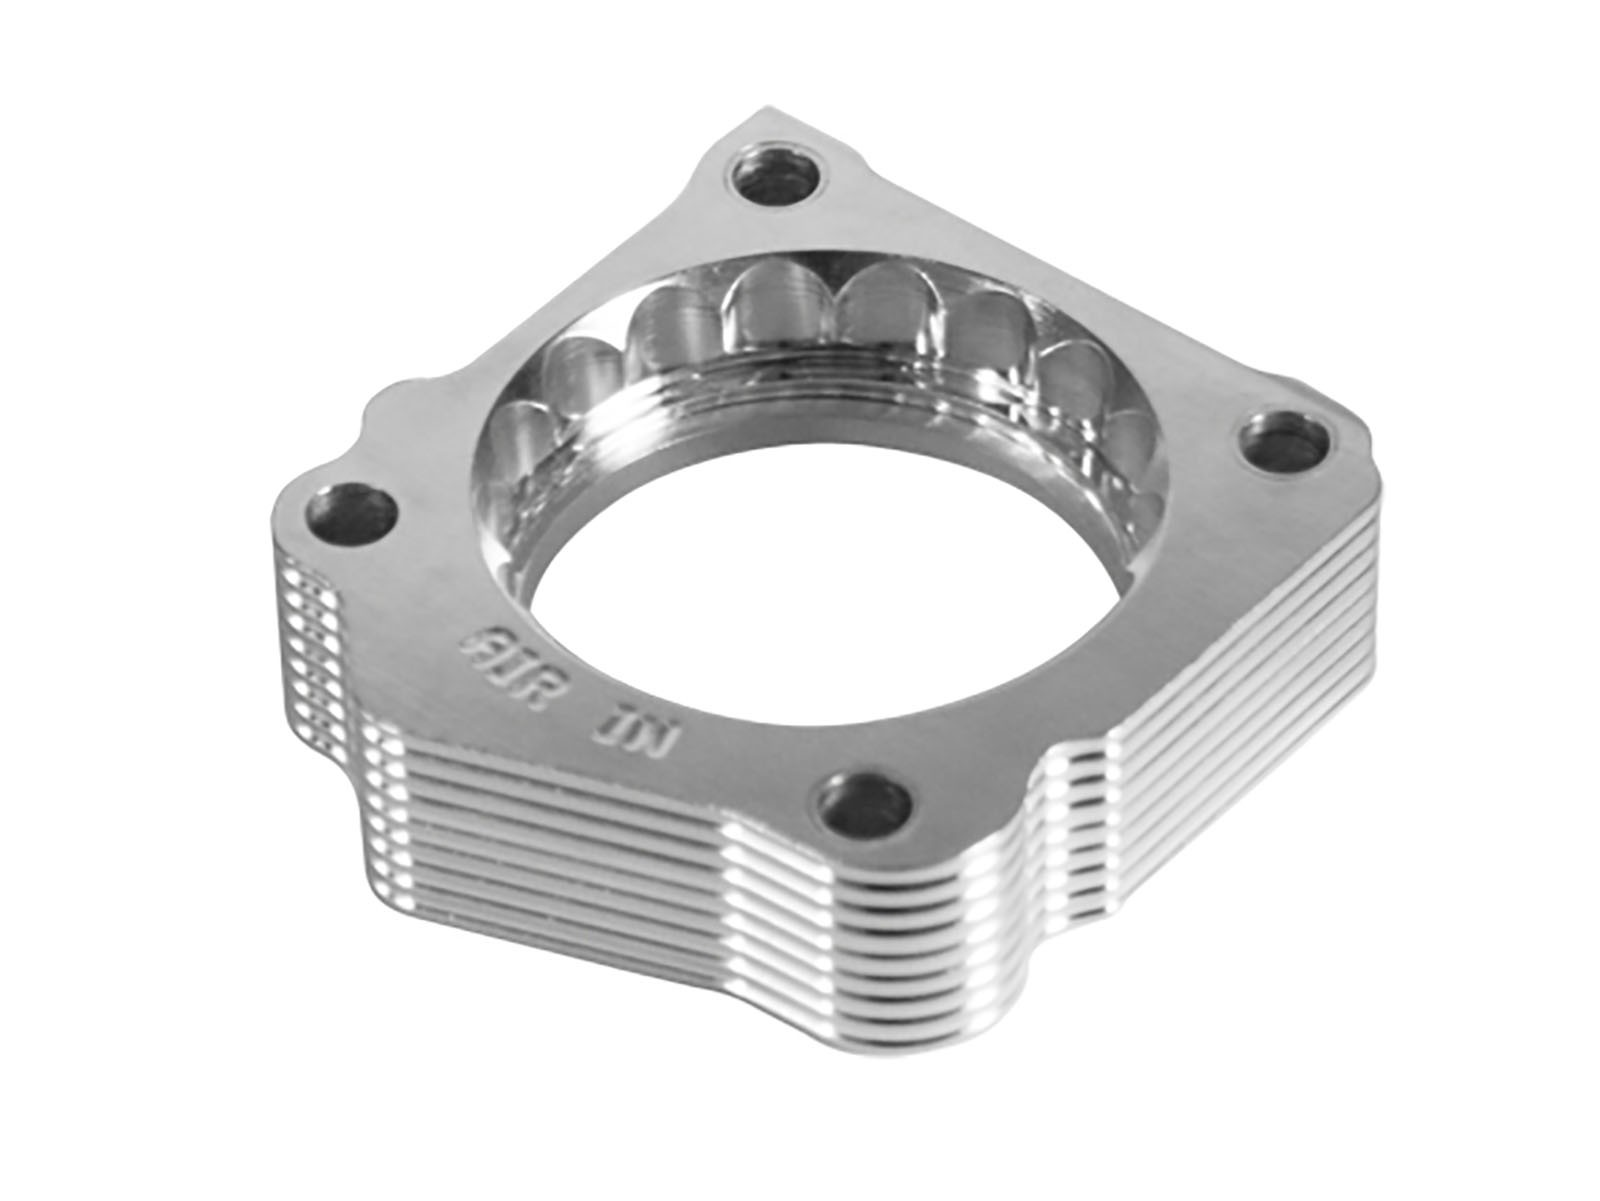 Silver Bullet Throttle Body Spacer Afe Power 2000 Toyota 4runner Intake Torque Tacoma 95 04 99 02 V6 34l